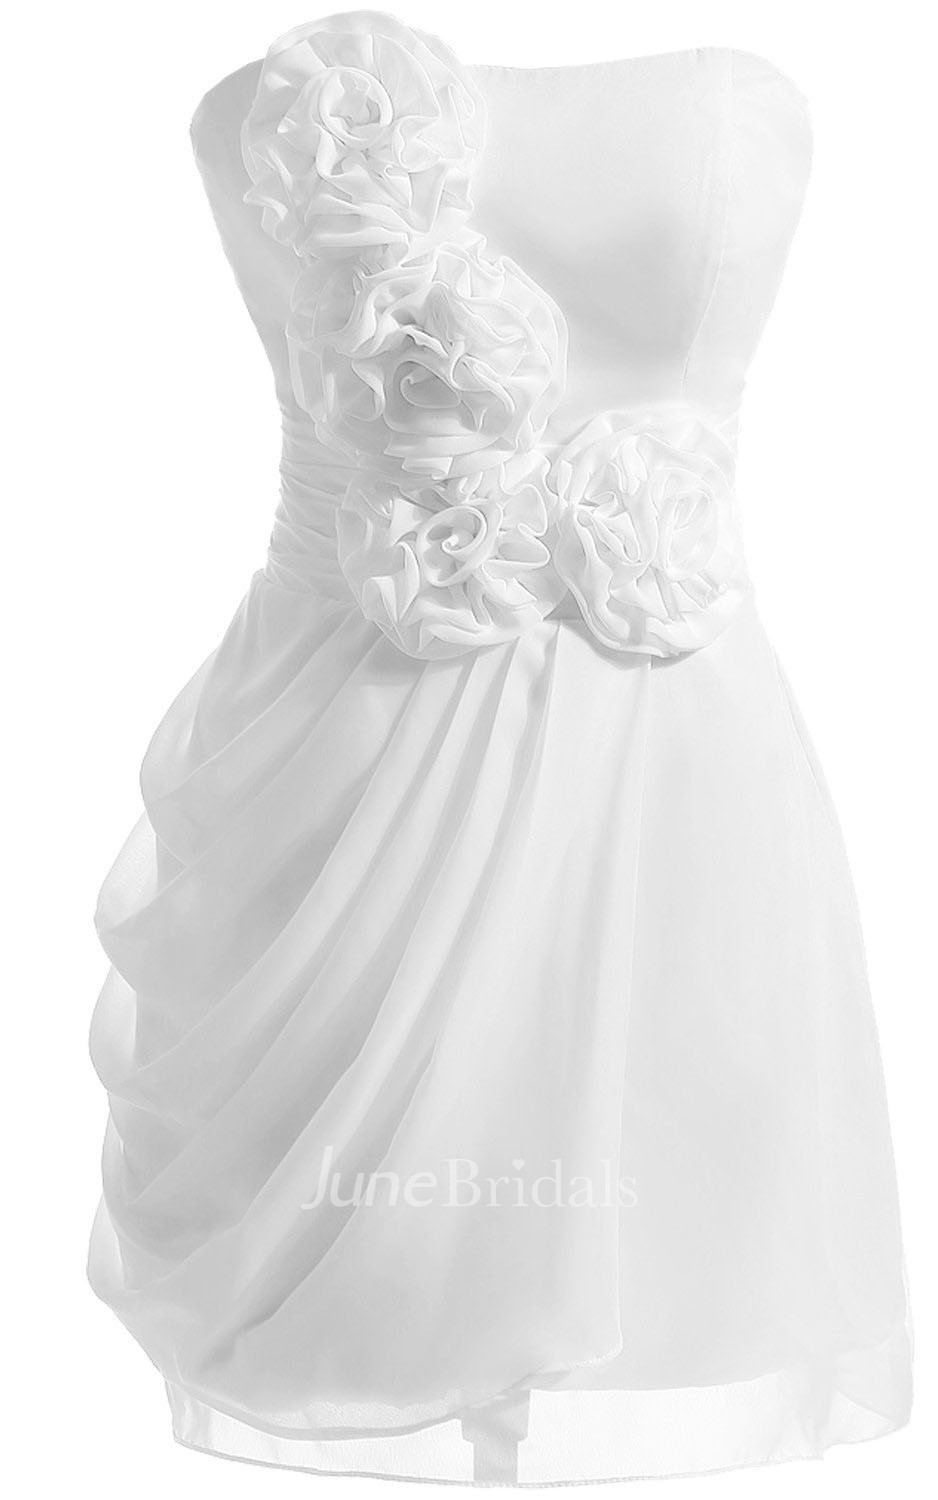 Strapless Floral Appliqued Short Ruffled Chiffon Dress